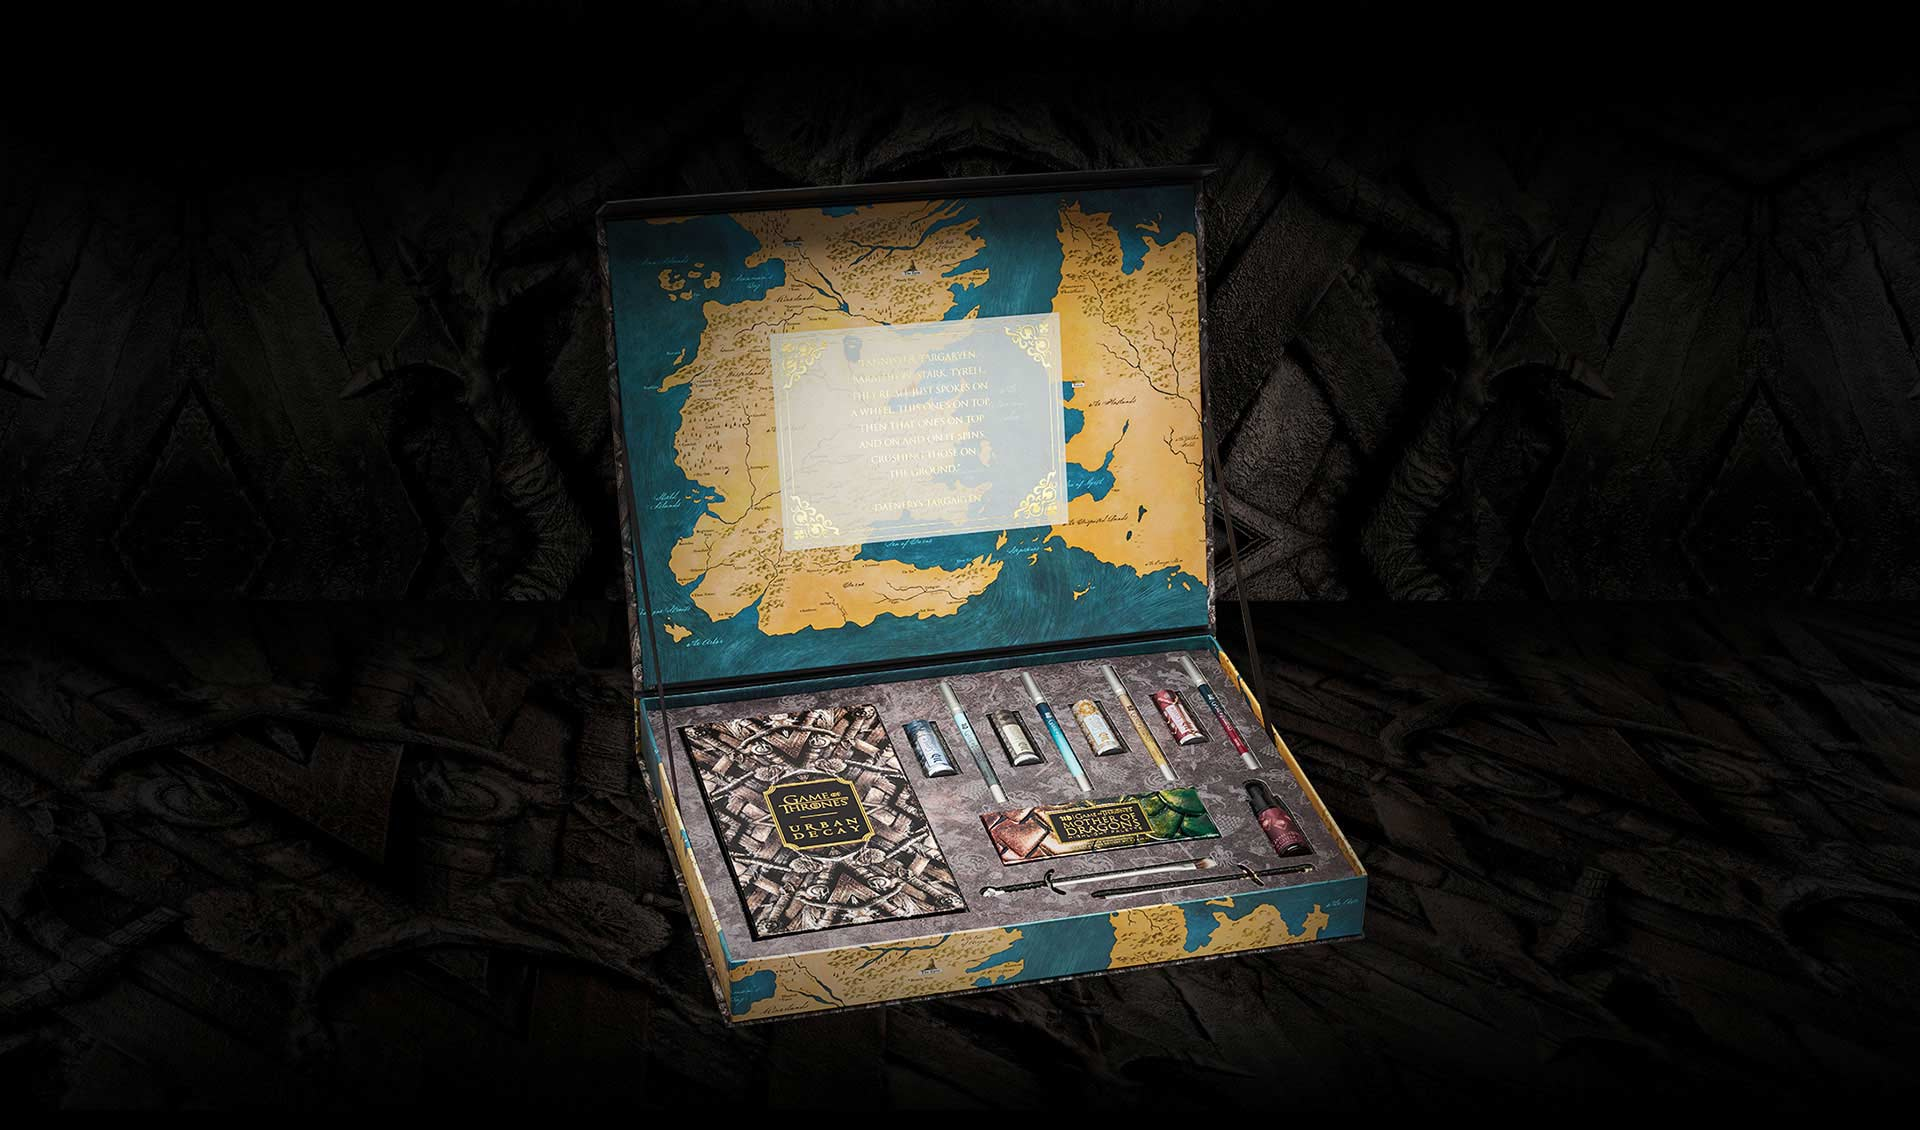 Urban Decay x Game of Thrones collection is launching May 2019 in Singapore. Image source: Urban Decay